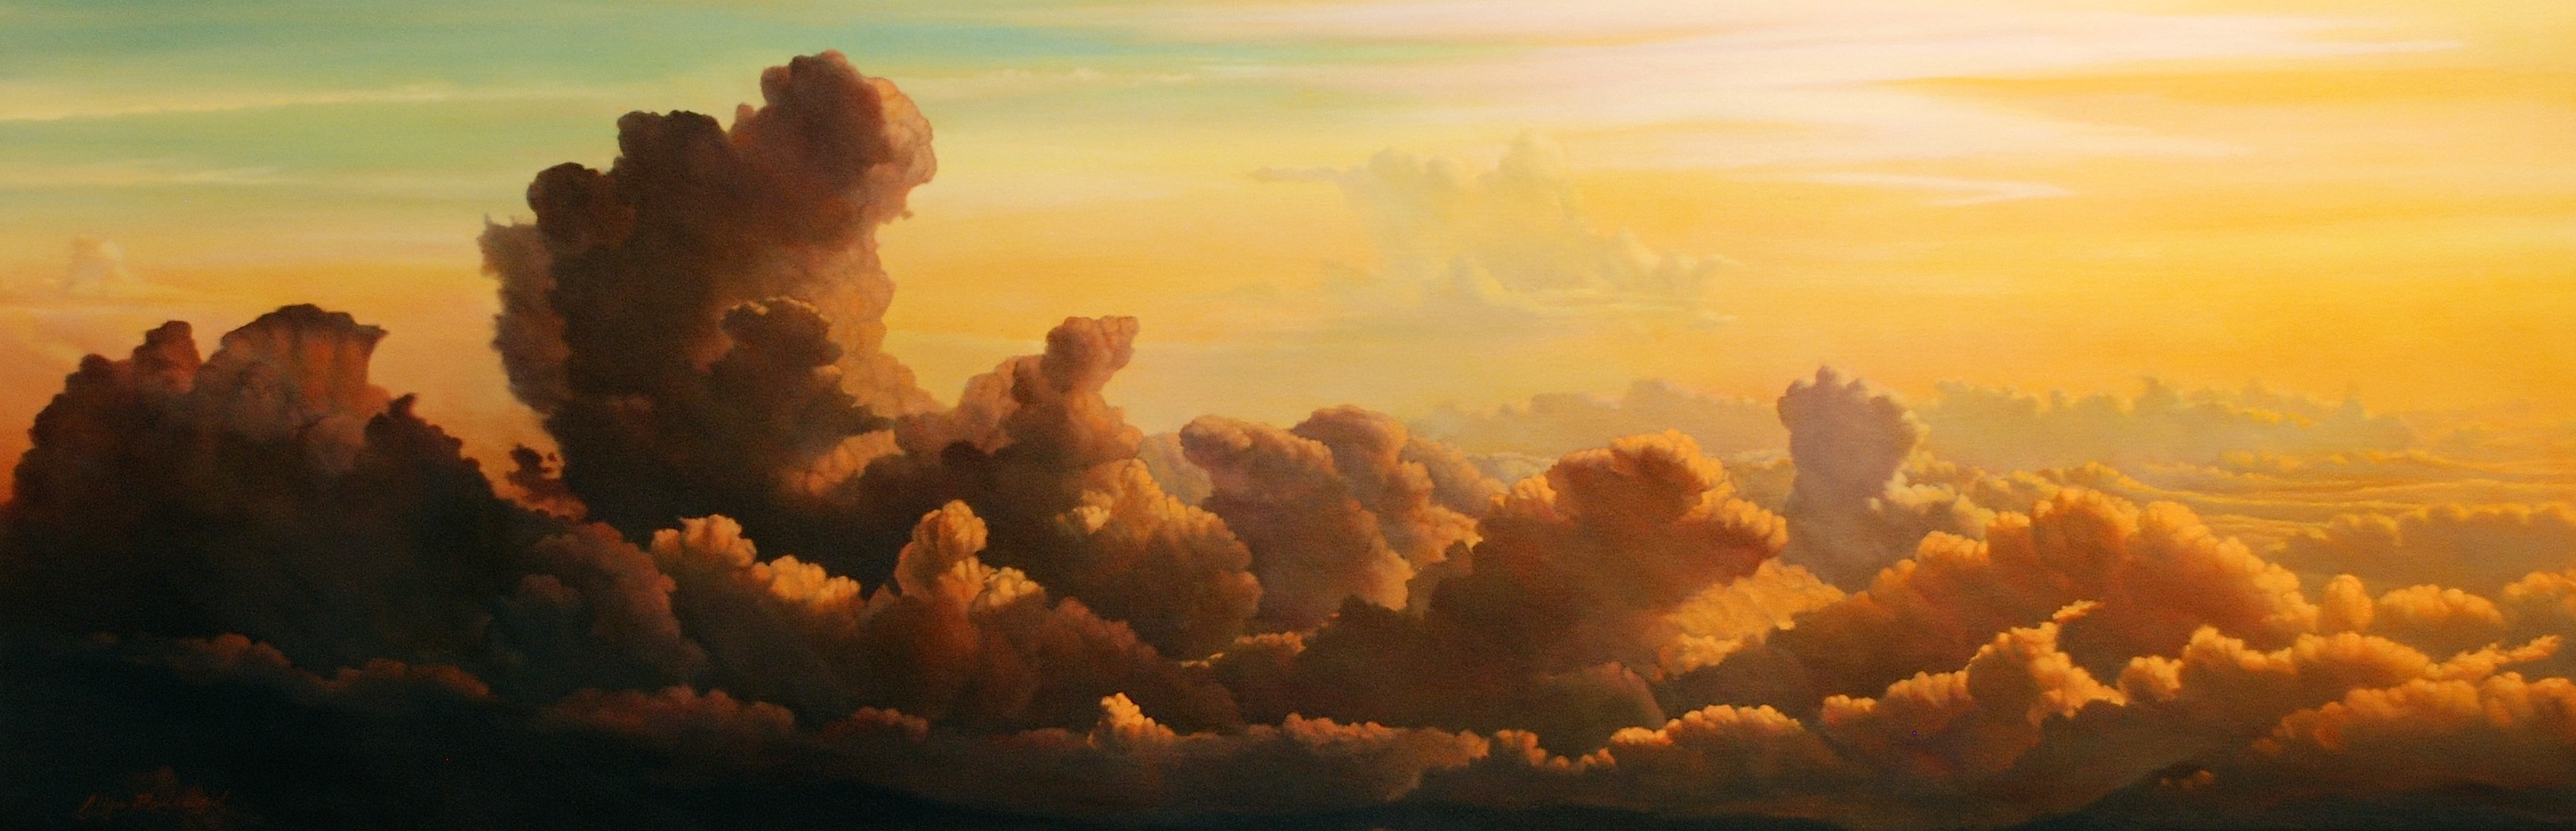 "'Morning Sky' | 24"" x 48"" 